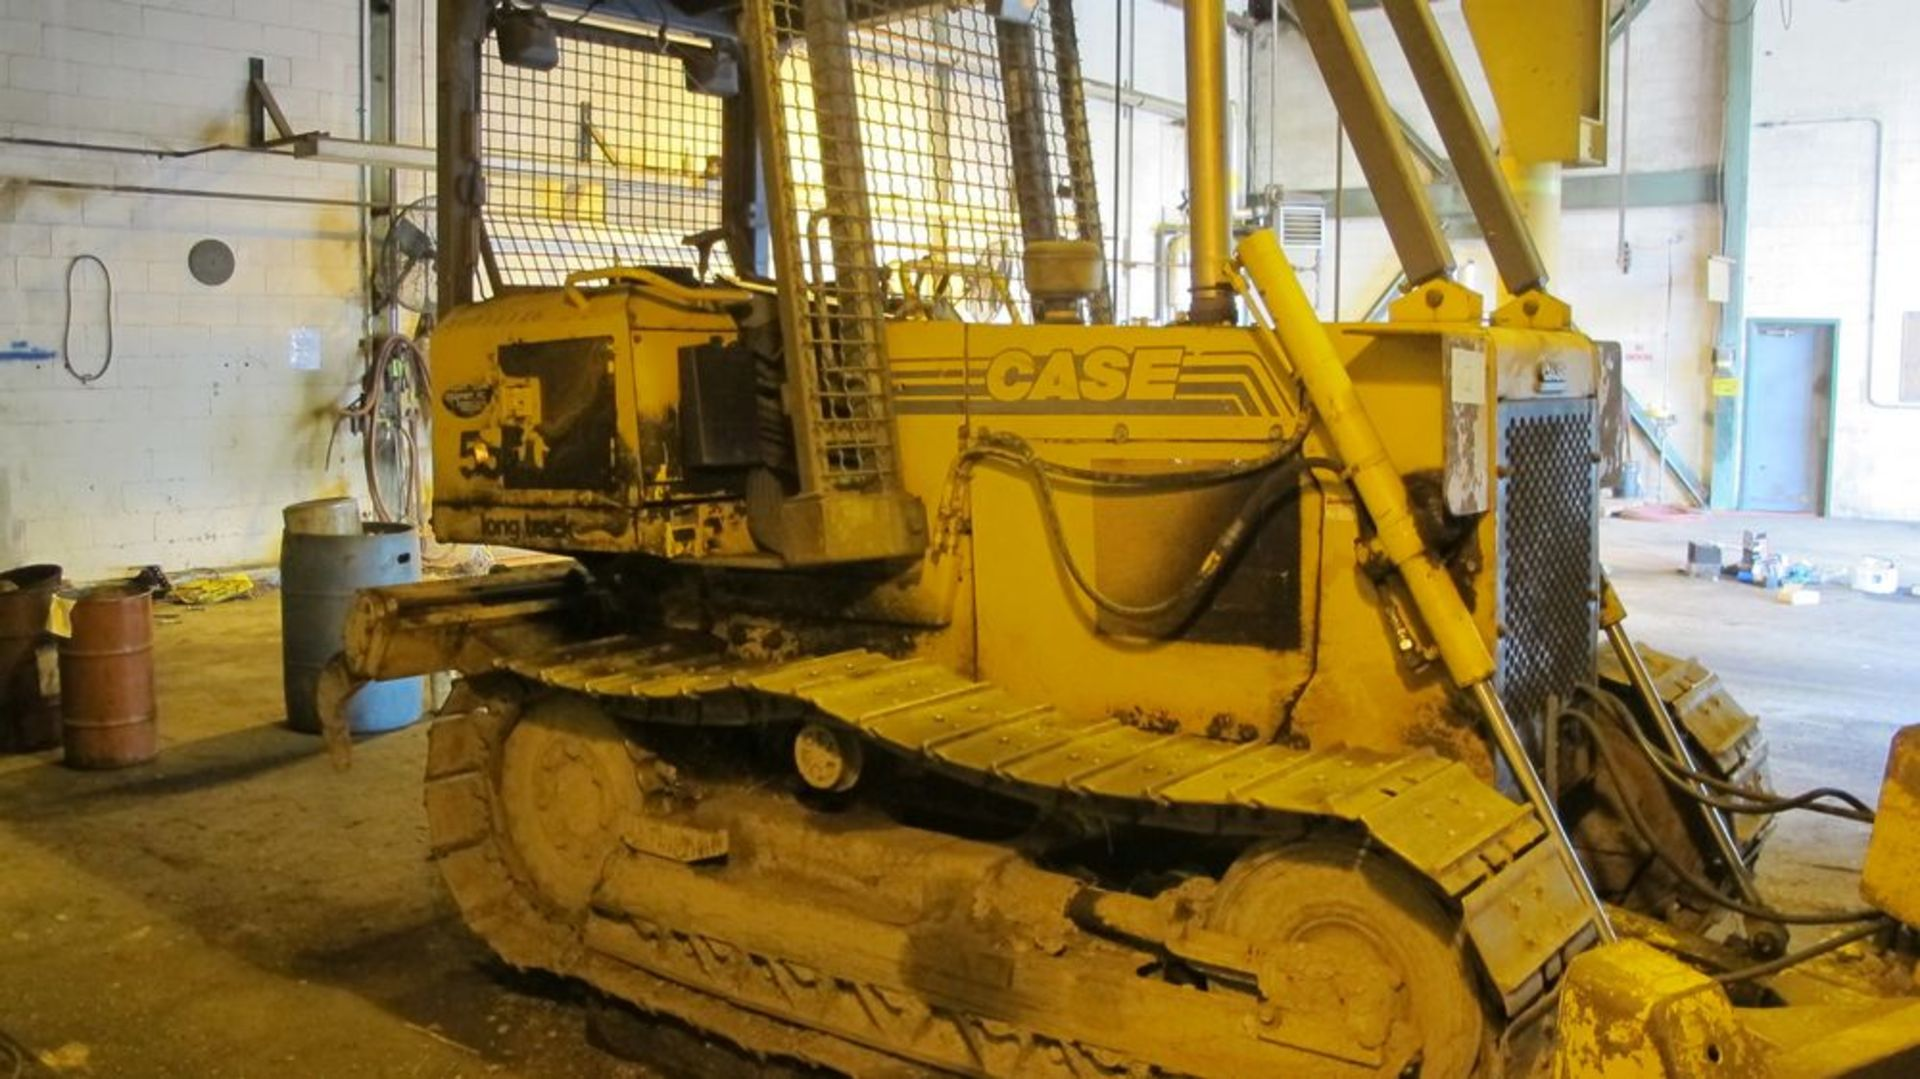 Lot 2 - CASE 5S0G, LONG TRACK DOZER, JJG0215496 (NEEDS REPAIR)